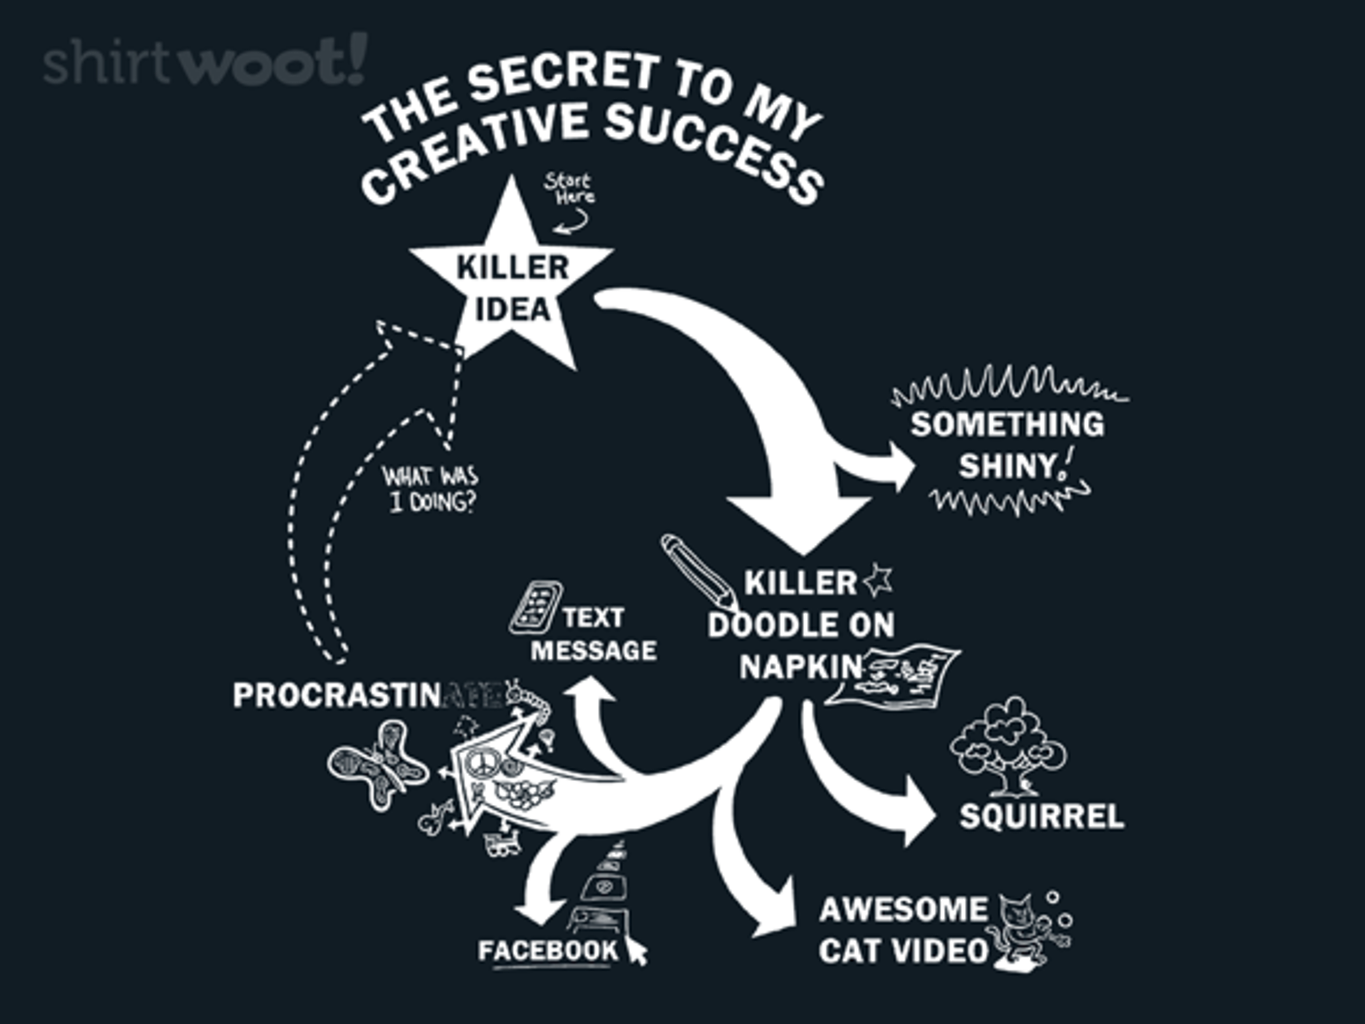 Woot!: Secret to My Creative Success